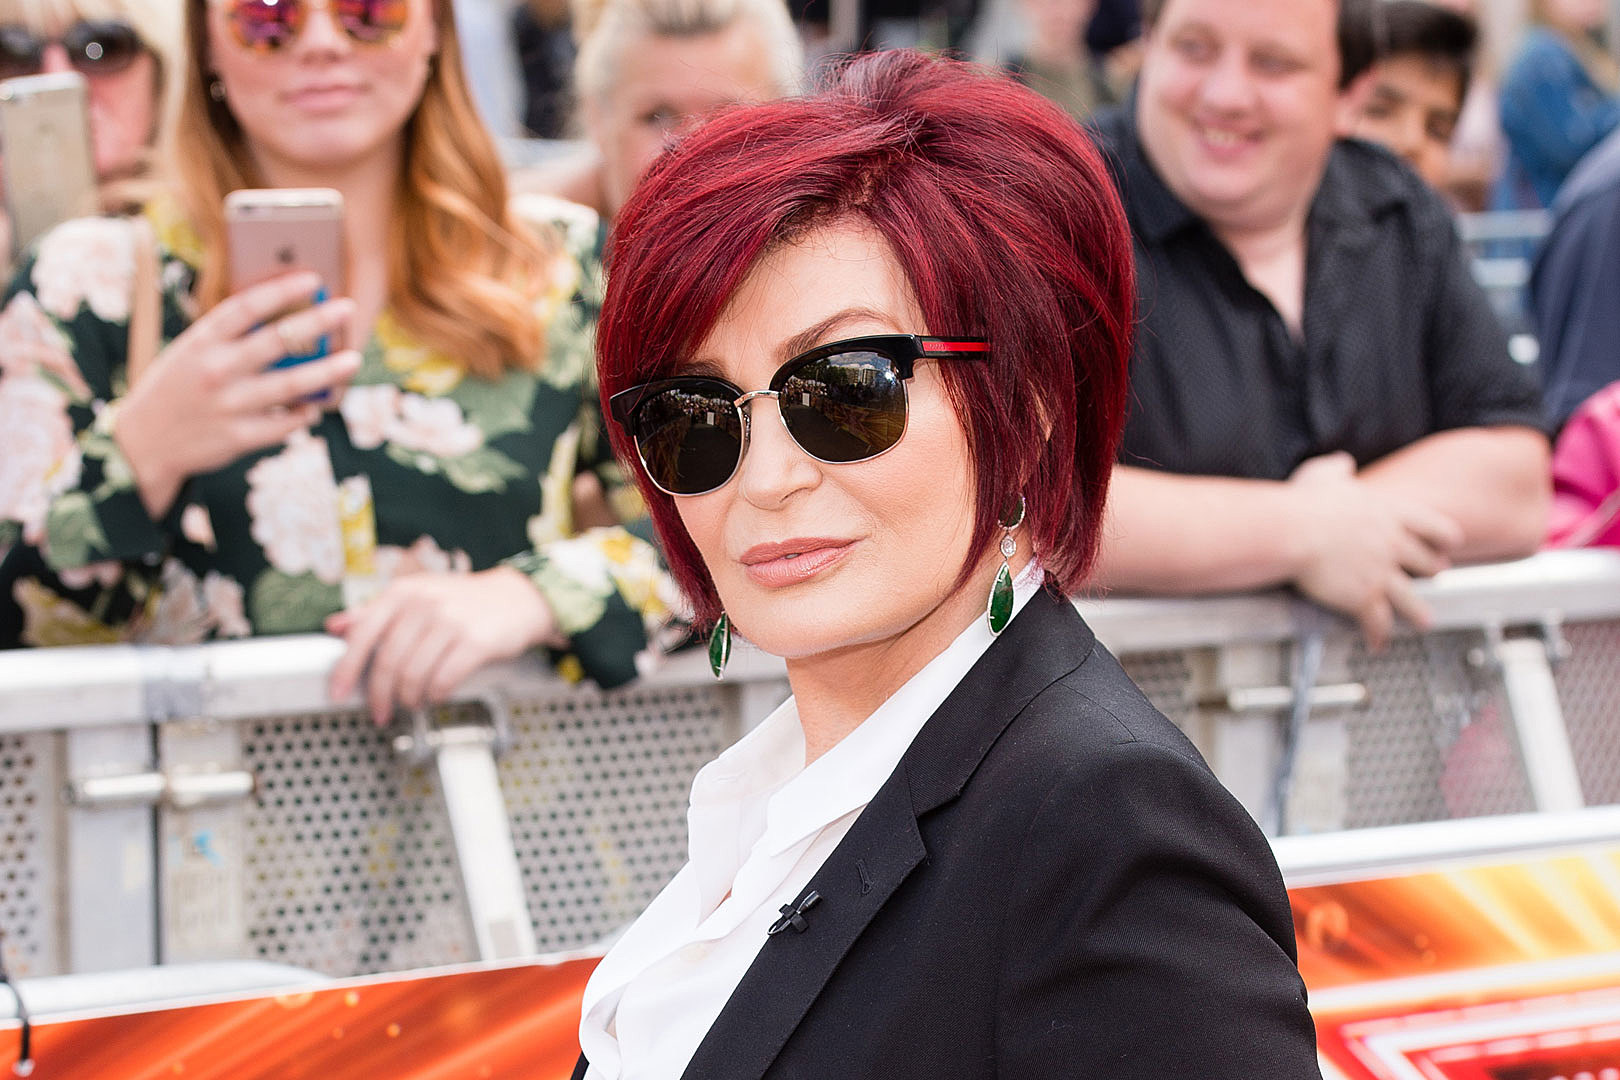 Sharon Osbourne on Ozy Fest Lawsuit: 'Where Do People Come Up With the Nerve?'